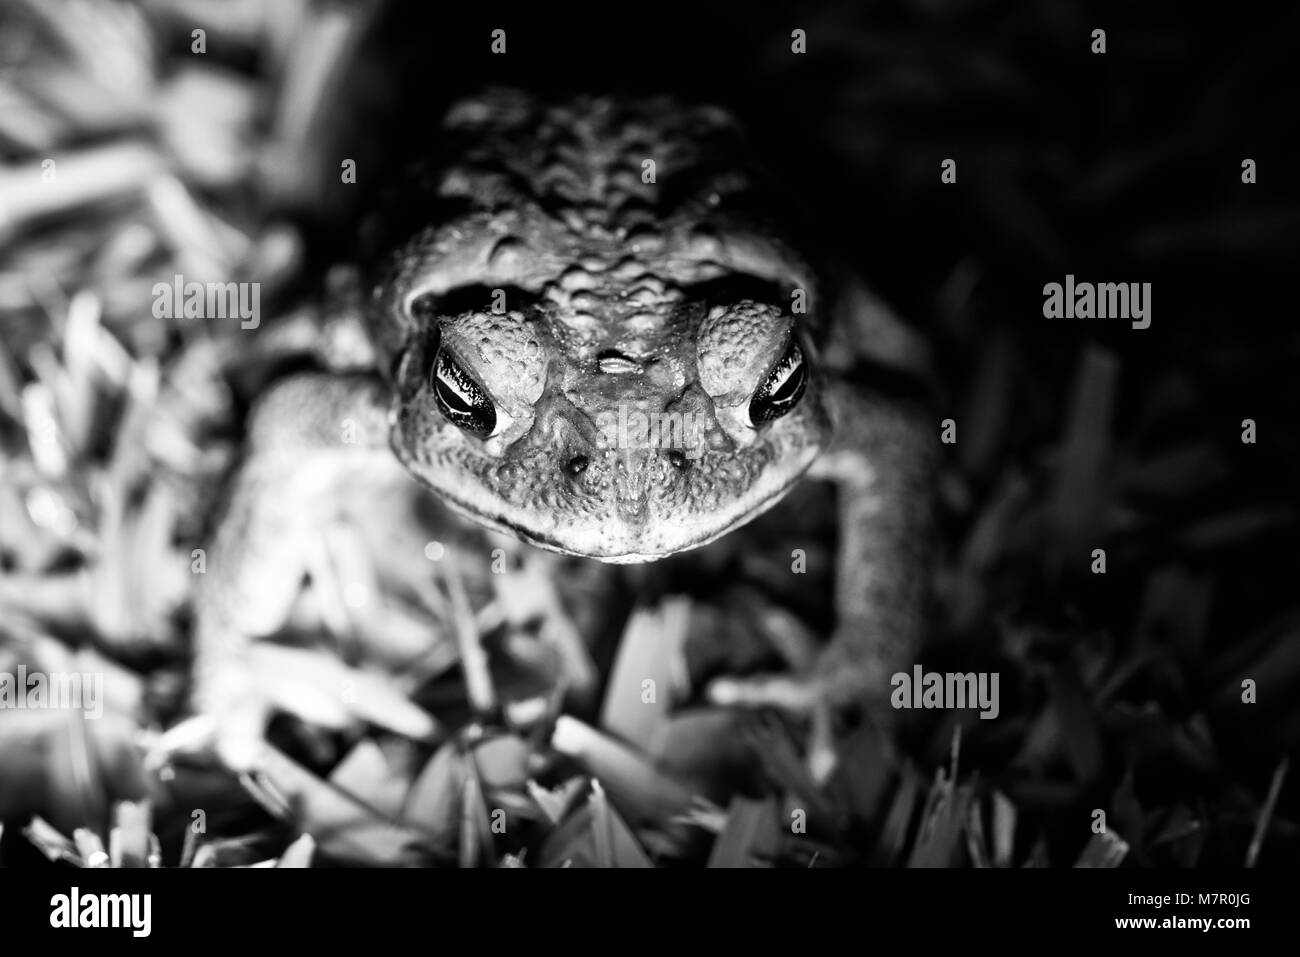 Image of cane toad Rhinella marina at night in Townsville Queensland Australia - Stock Image